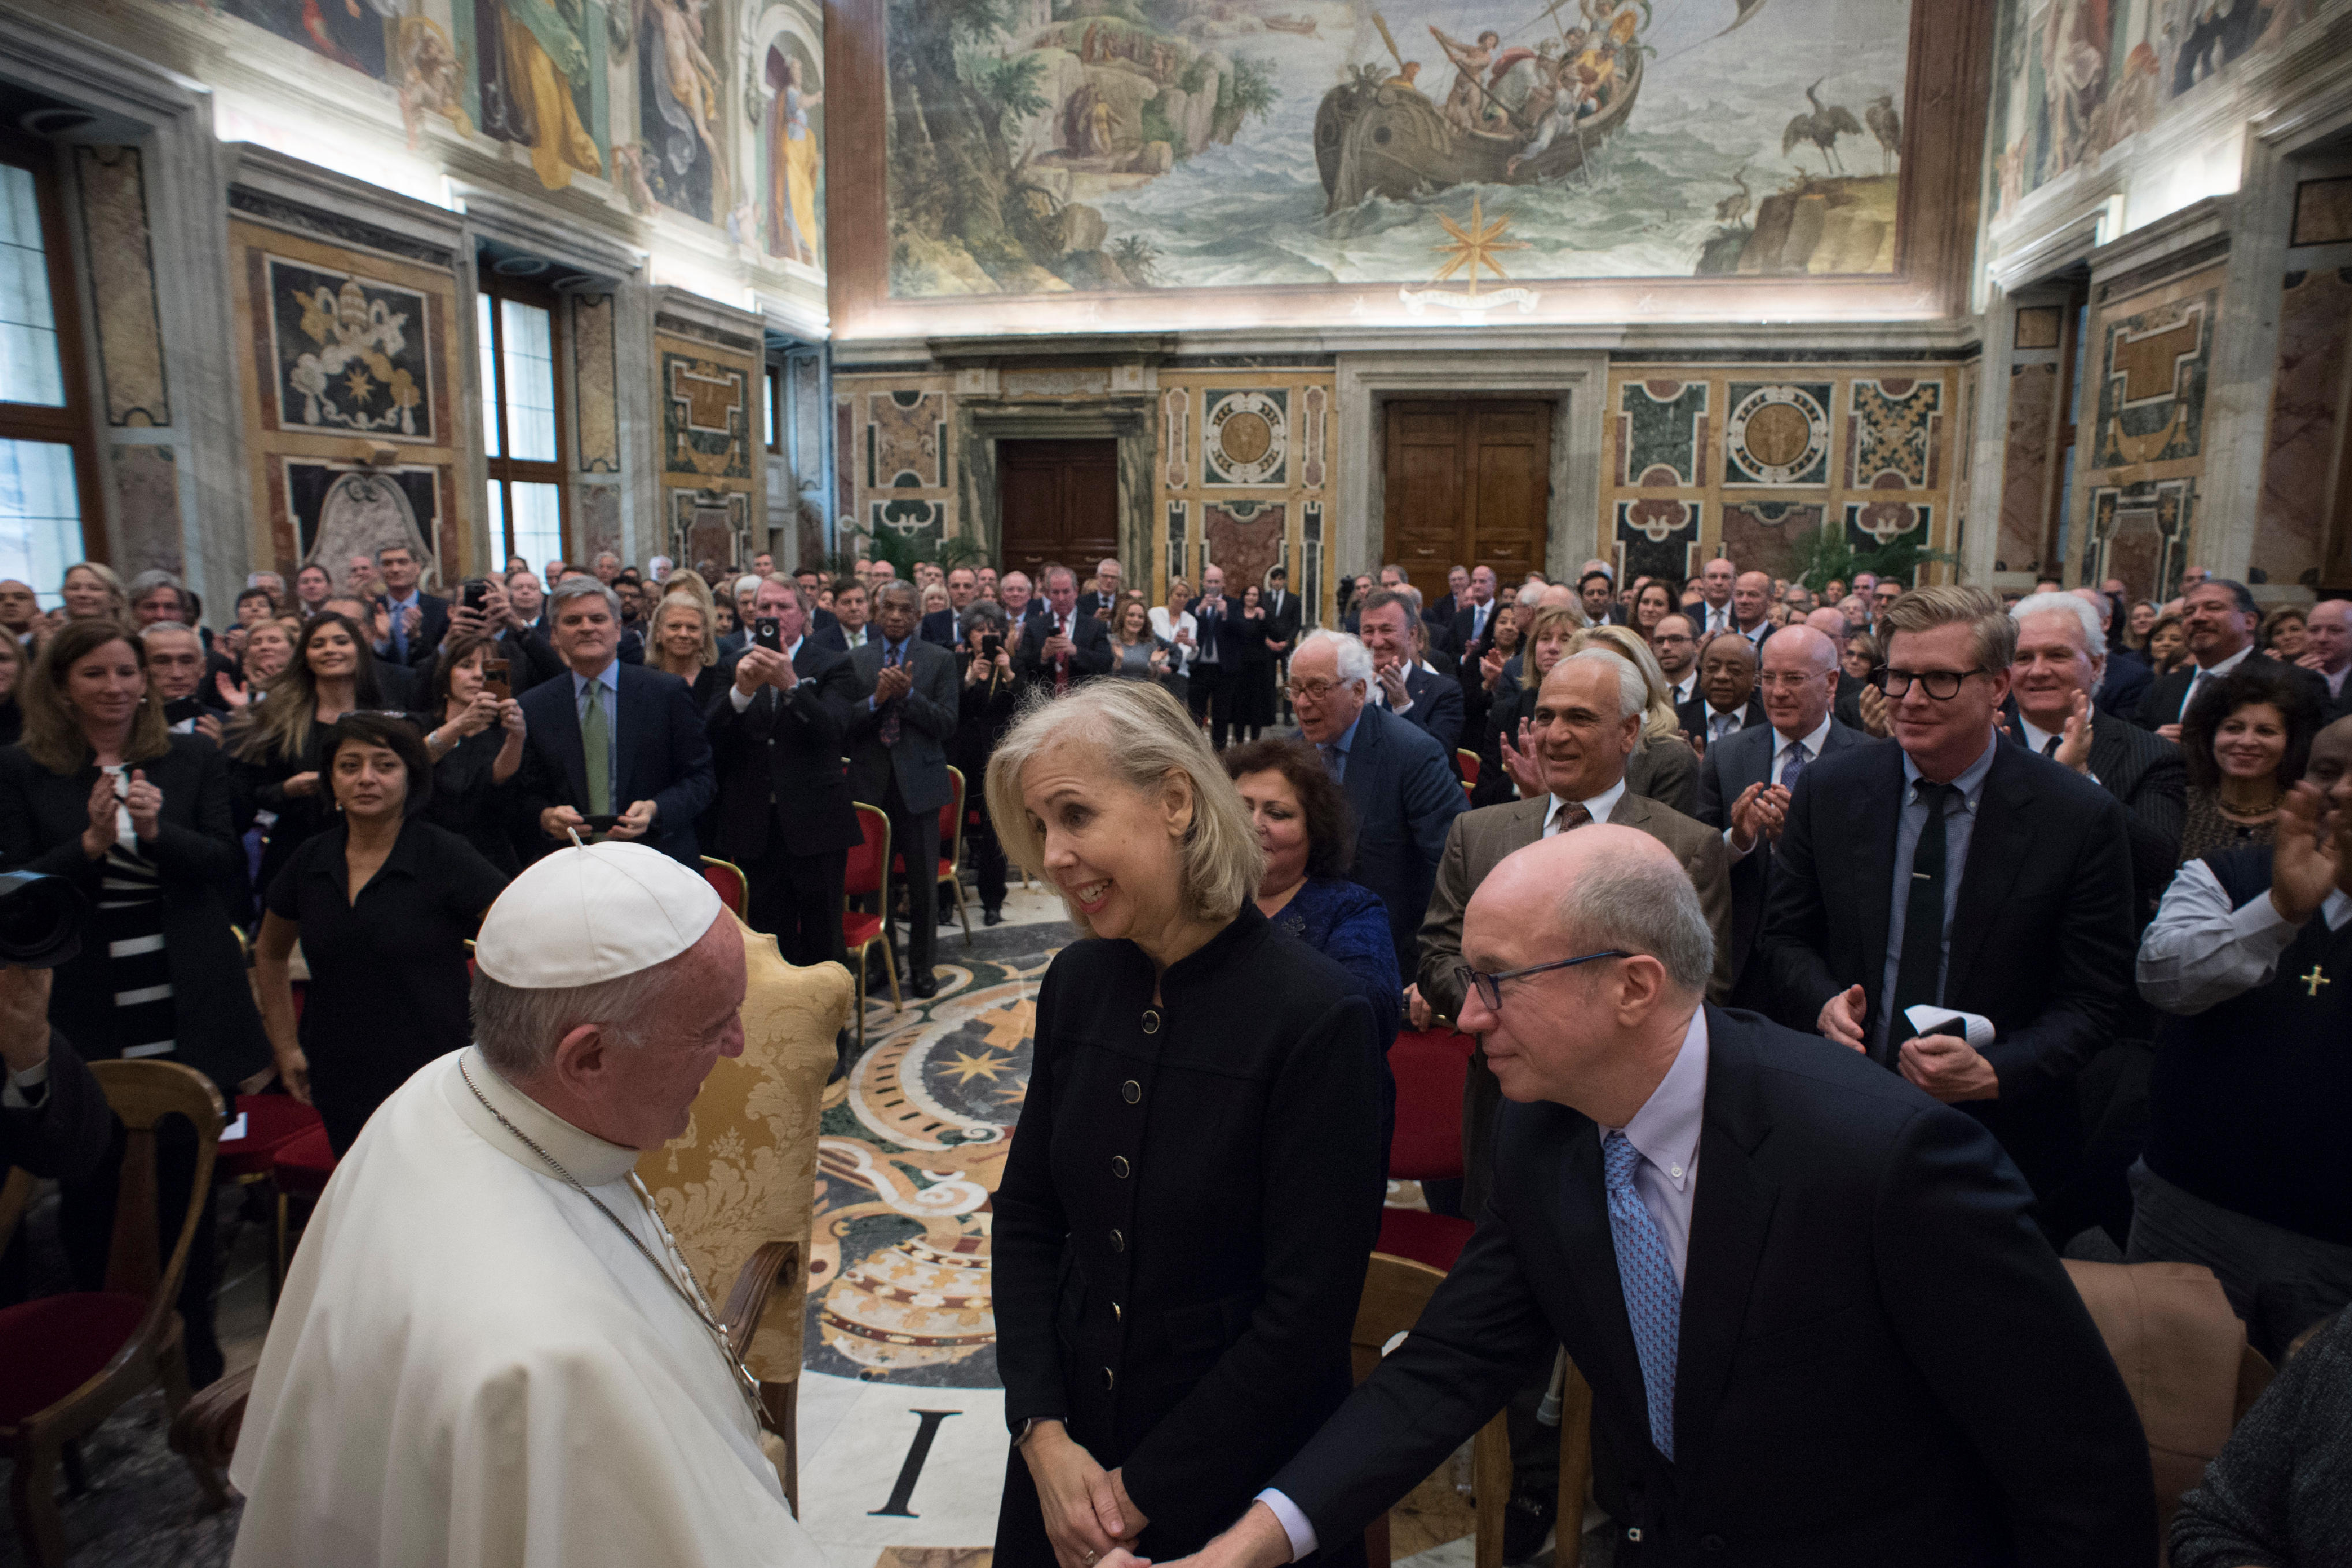 Pope Francis greets Time editor-in-chief Nancy Gibbs and Fortune's Alan Murray in December.